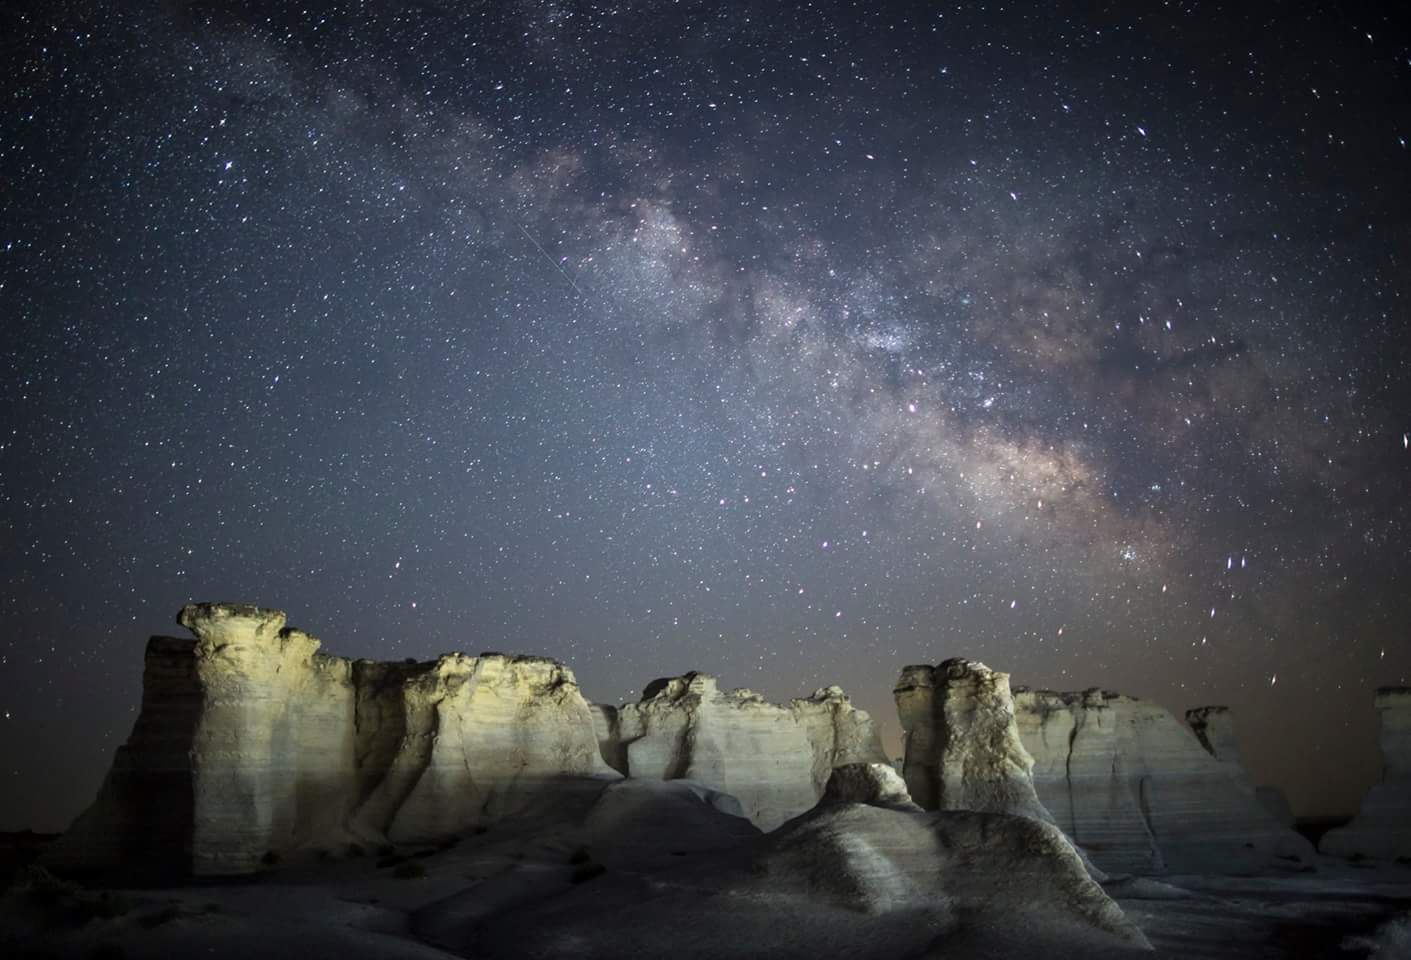 Our Home Over The Monument Rocks In Nw Kansas Https Ift Tt